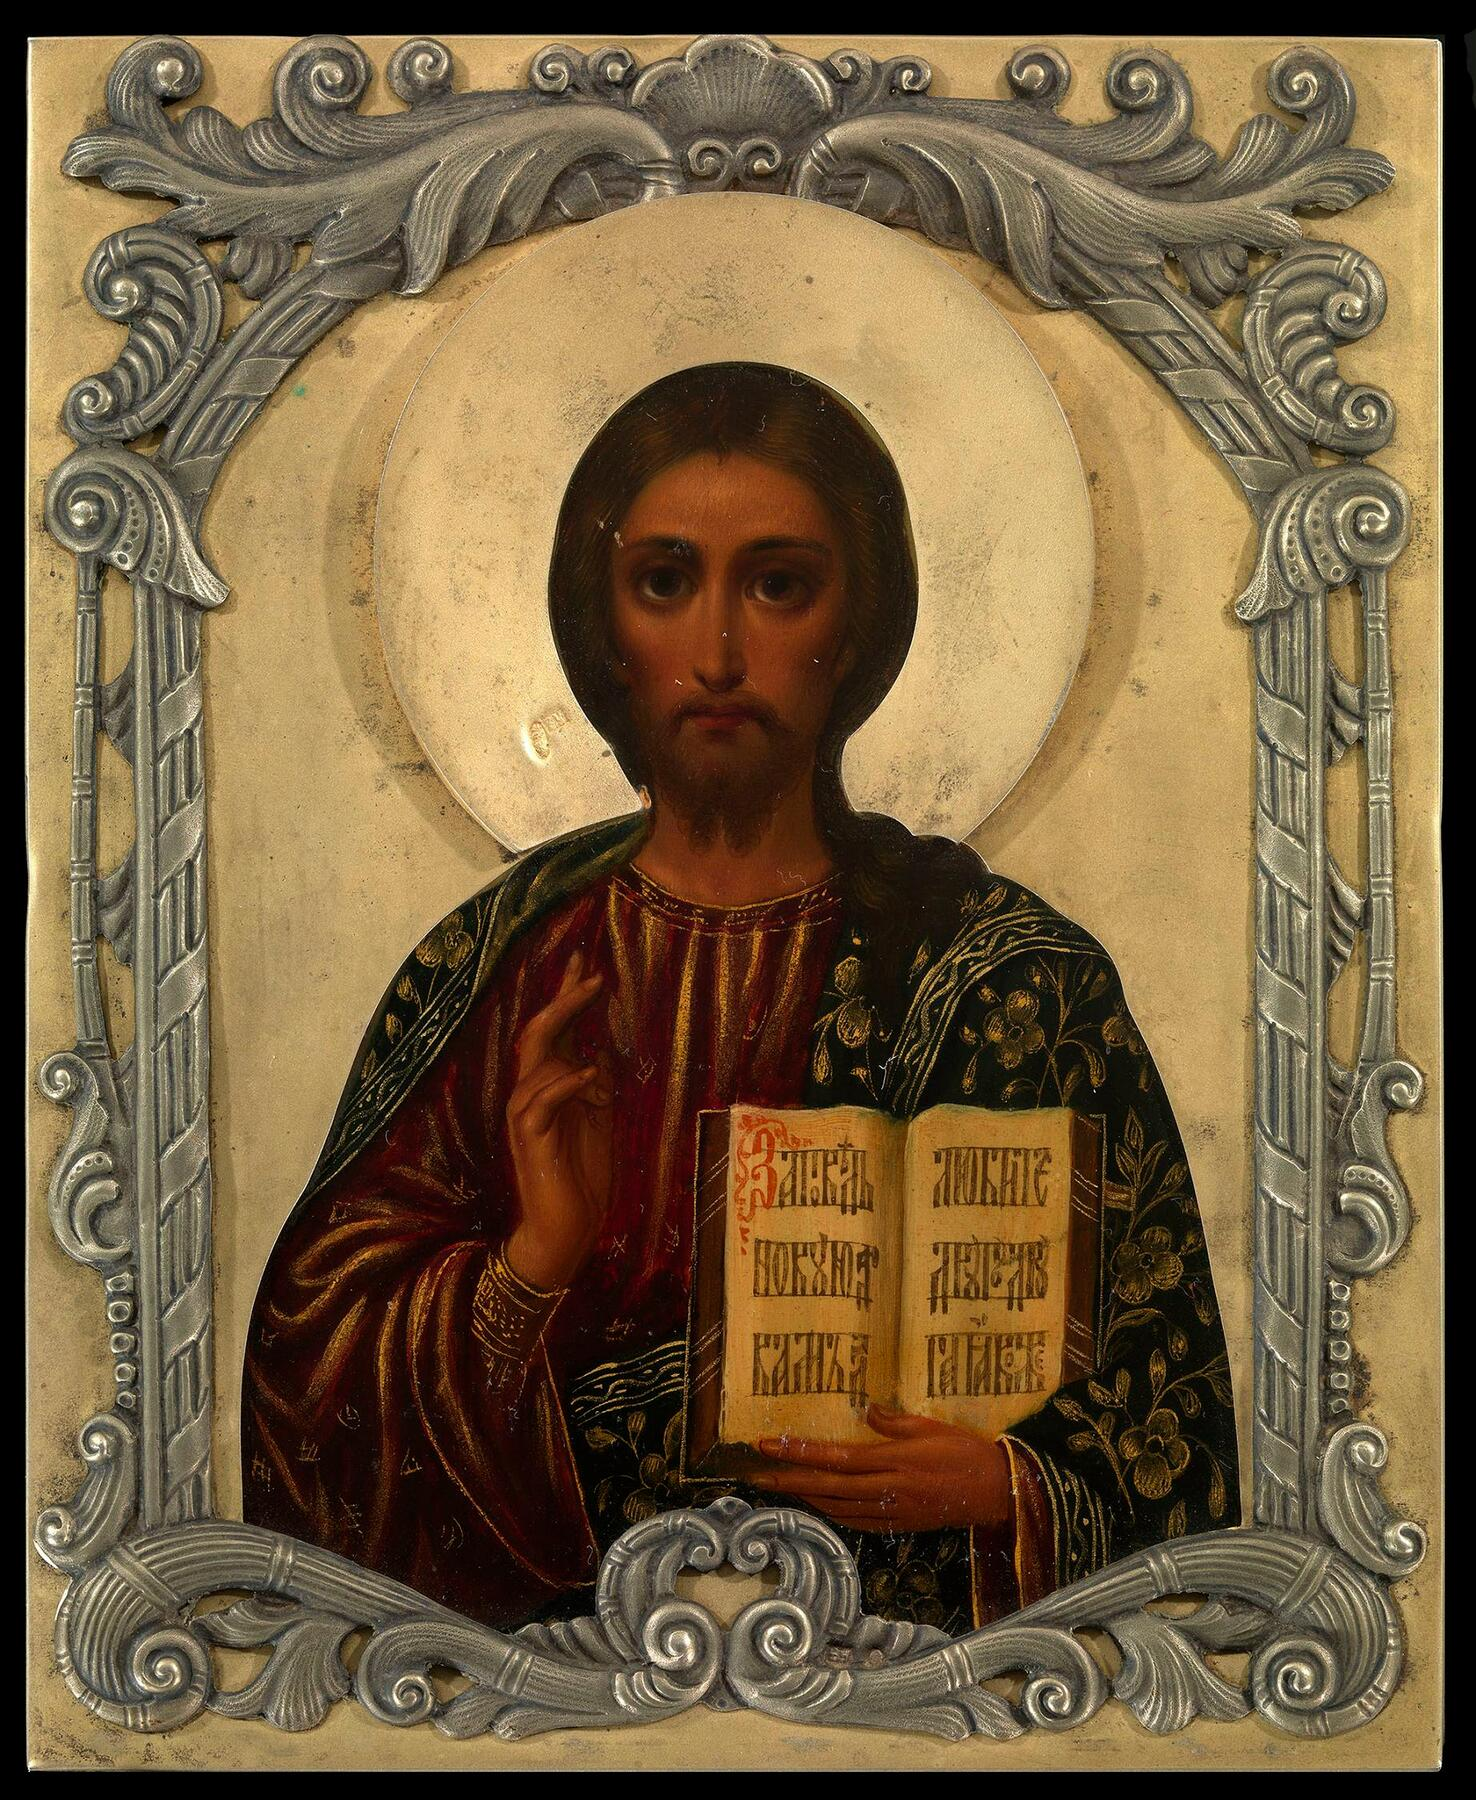 EARLY 20TH CENTURY, OIL ON PANEL, OKLADS STAMPED WITH MAKER'S MARKS EU IN CYRILLIC, MOSCOW, 84 STANDARD.